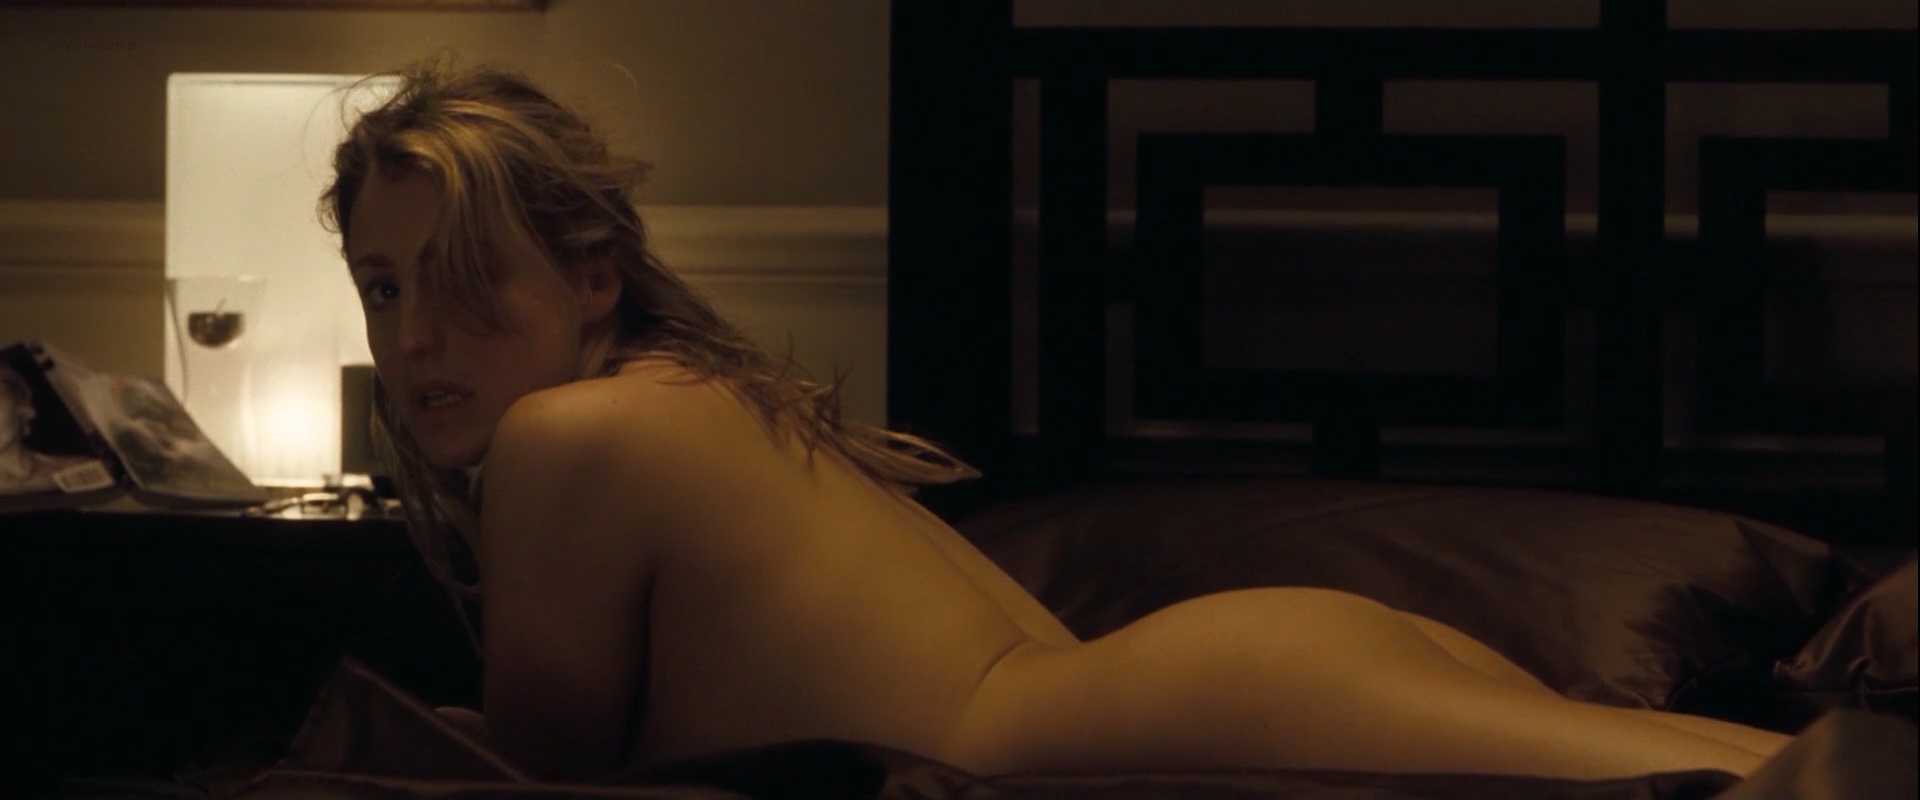 Sharon Stone nude topless sex and Flora Montgomery nude - Basic Instinct 2 (2006) hd1080p (4)